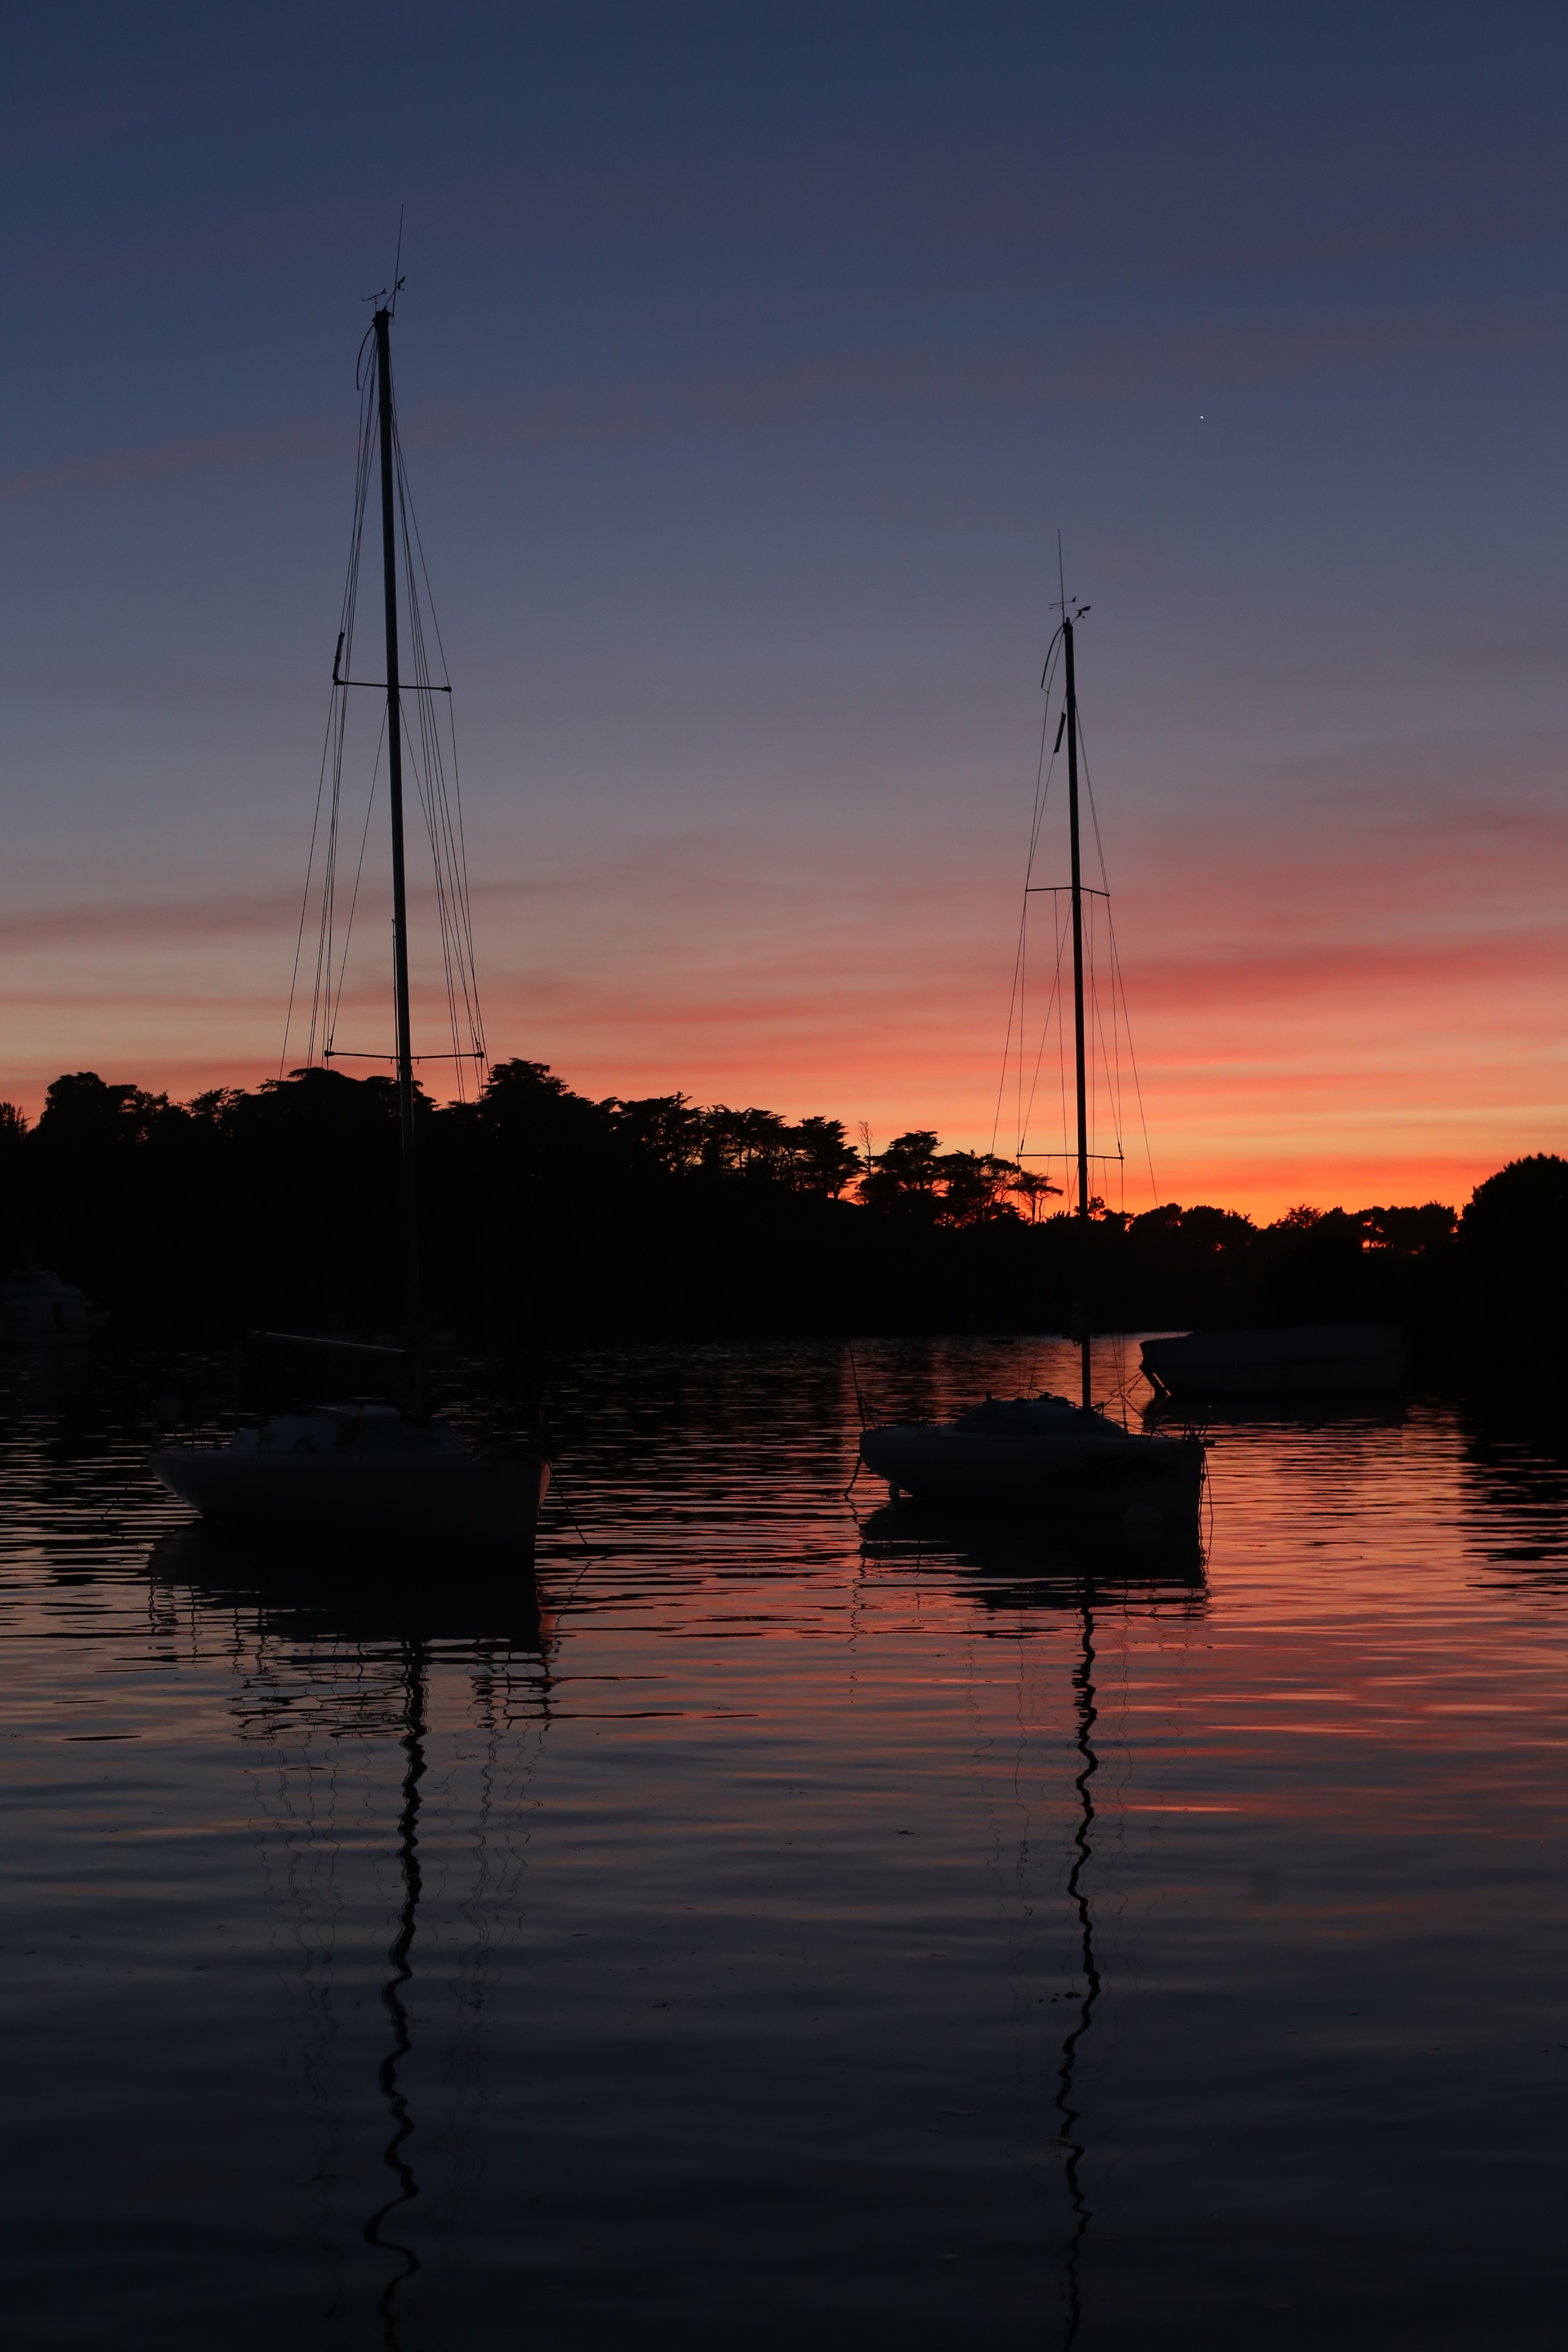 Boats at sunset under a purple sky, Brittany.